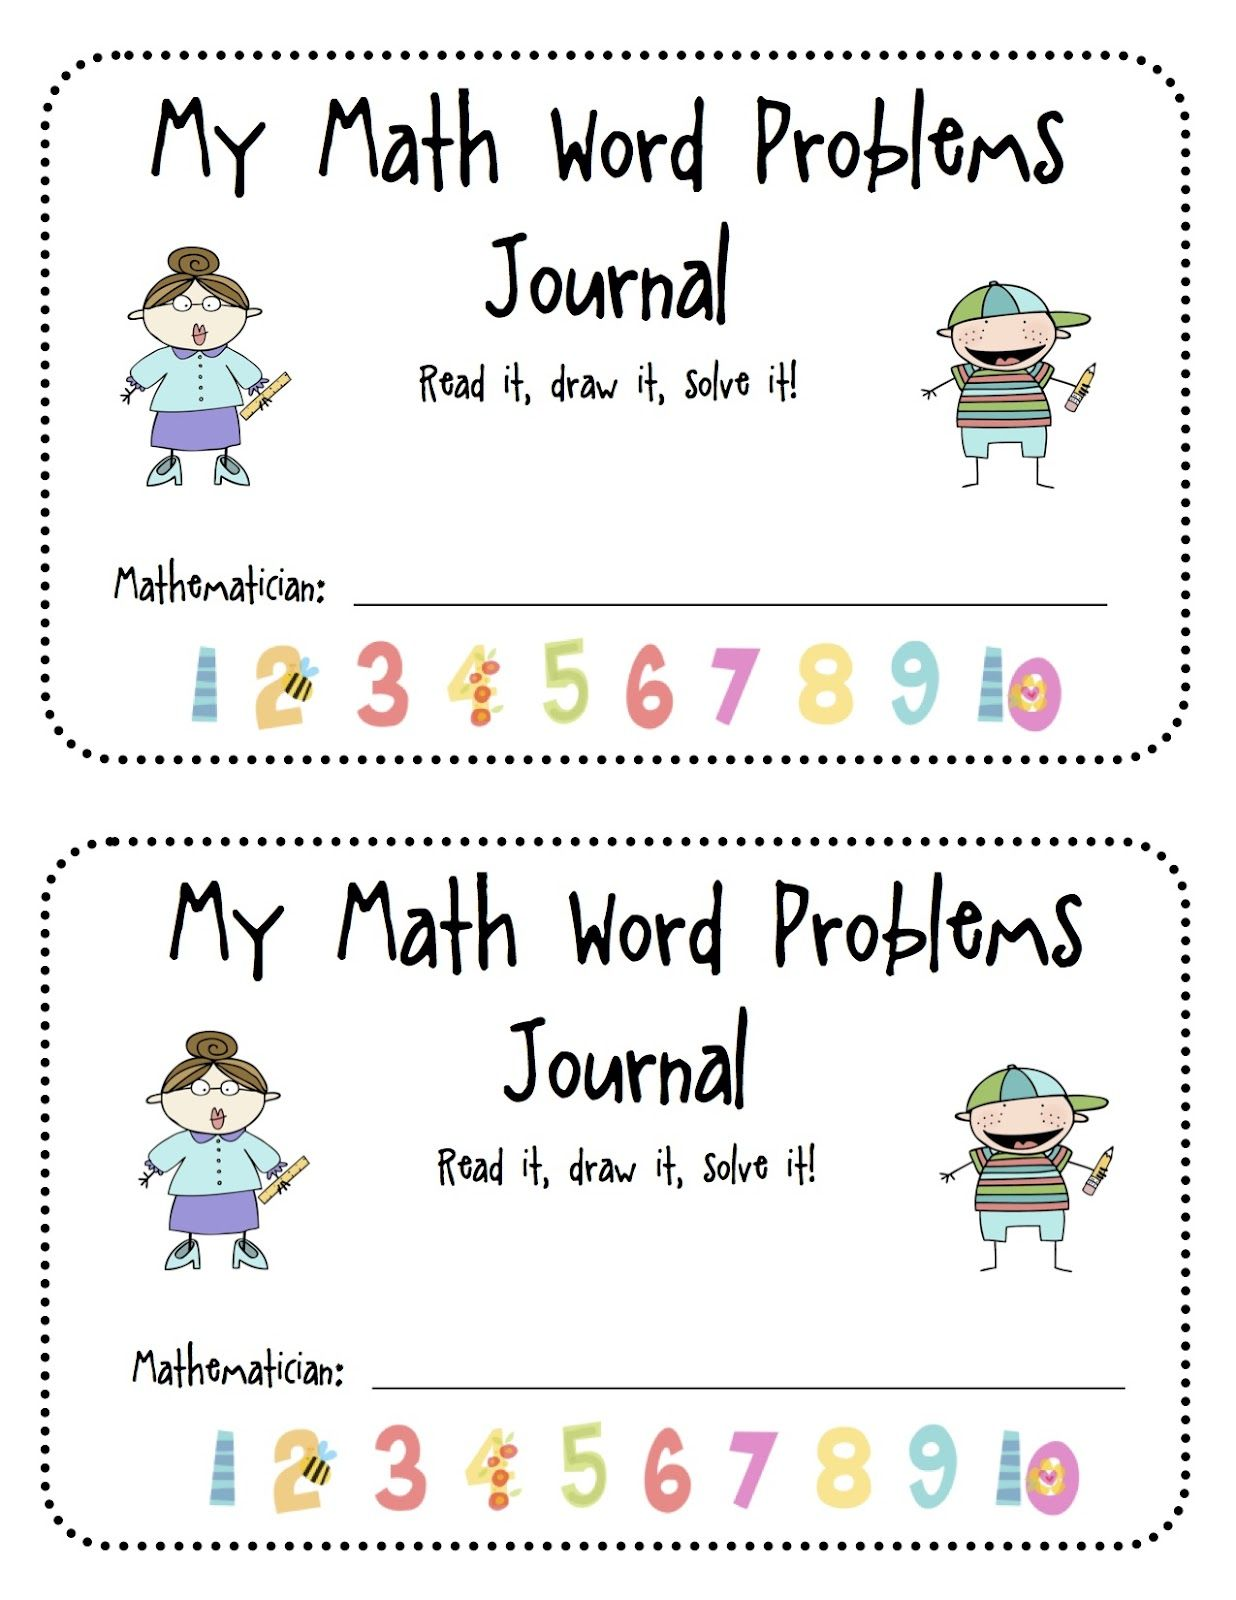 Worksheet Kindergarten Math Word Problems 17 best images about story problems on pinterest problem solving charts and word problems